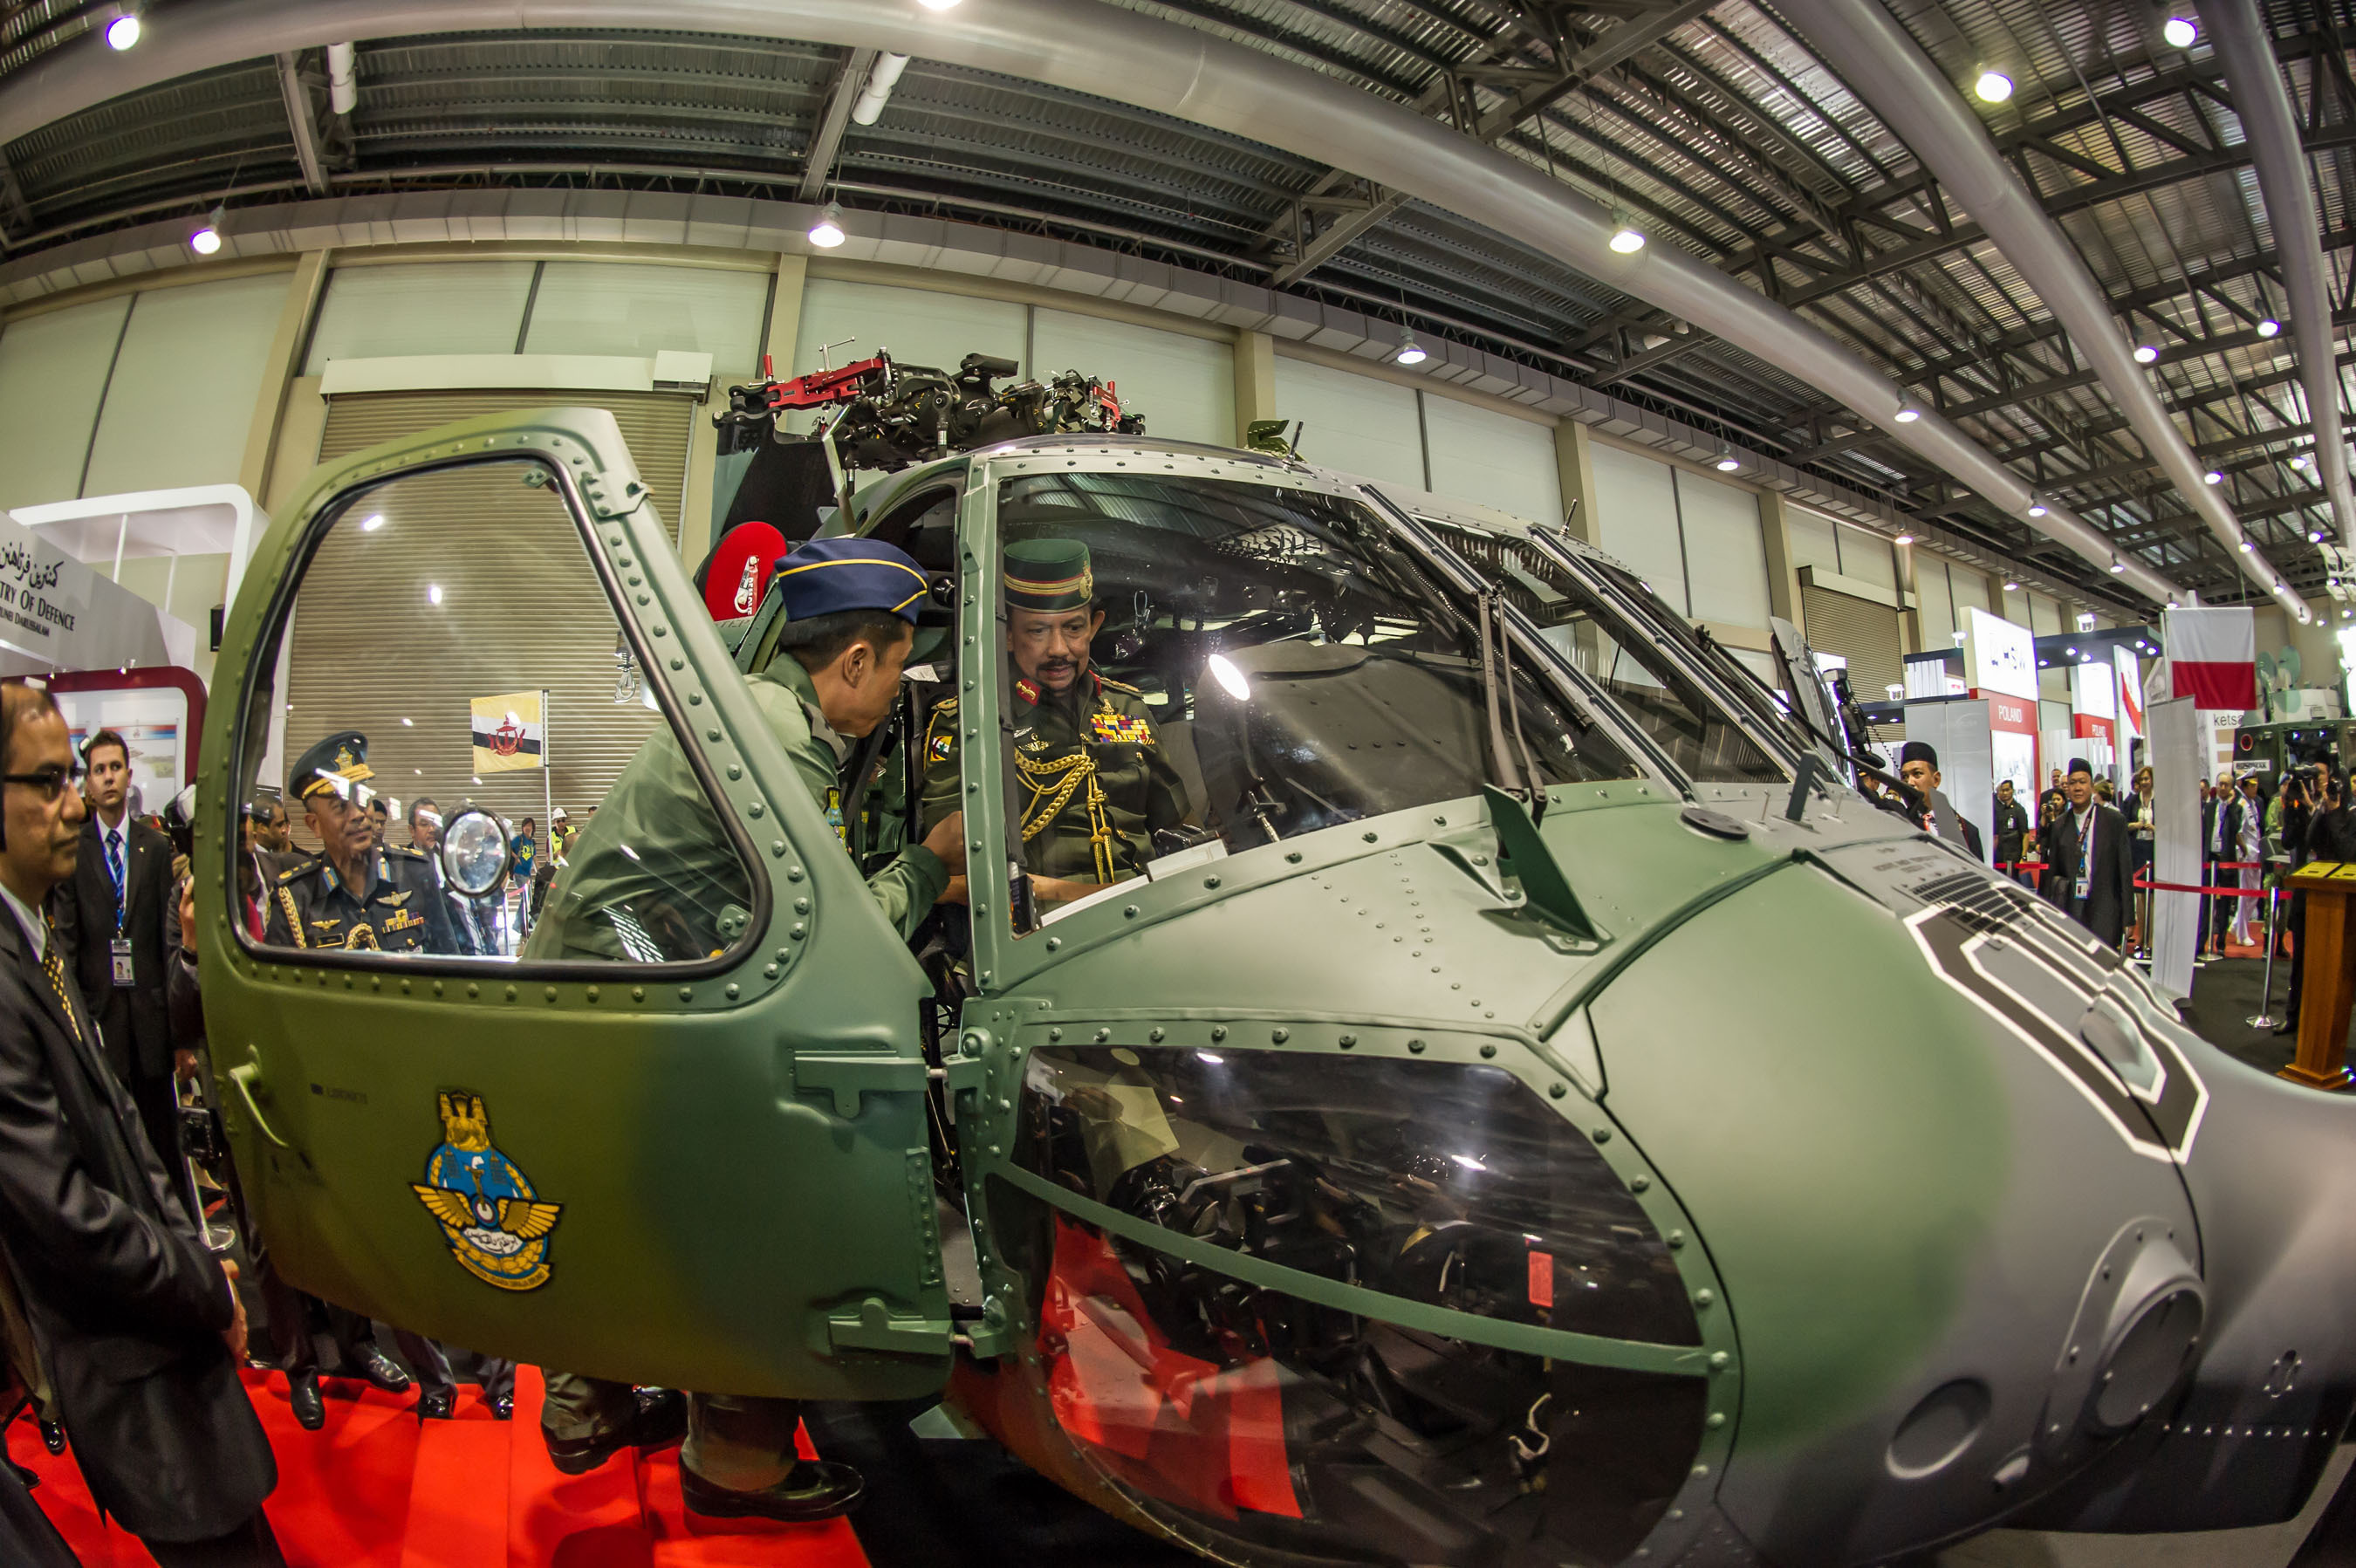 The Sultan of Brunei inspects a Sikorsky S-70i(TM) BLACK HAWK helicopter during the Brunei International Defence Exhibition. The Royal Brunei Air Force is taking delivery of 12 S-70i aircraft through the end of 2014. Equipped with a suite of advanced avionics and sensors, the multirole aircraft will perform a variety of missions over land and water, including search and rescue, humanitarian relief, anti-piracy, troop transport and medical evacuation. (PRNewsFoto/Sikorsky Aircraft) (PRNewsFoto/SIKORSKY AIRCRAFT)